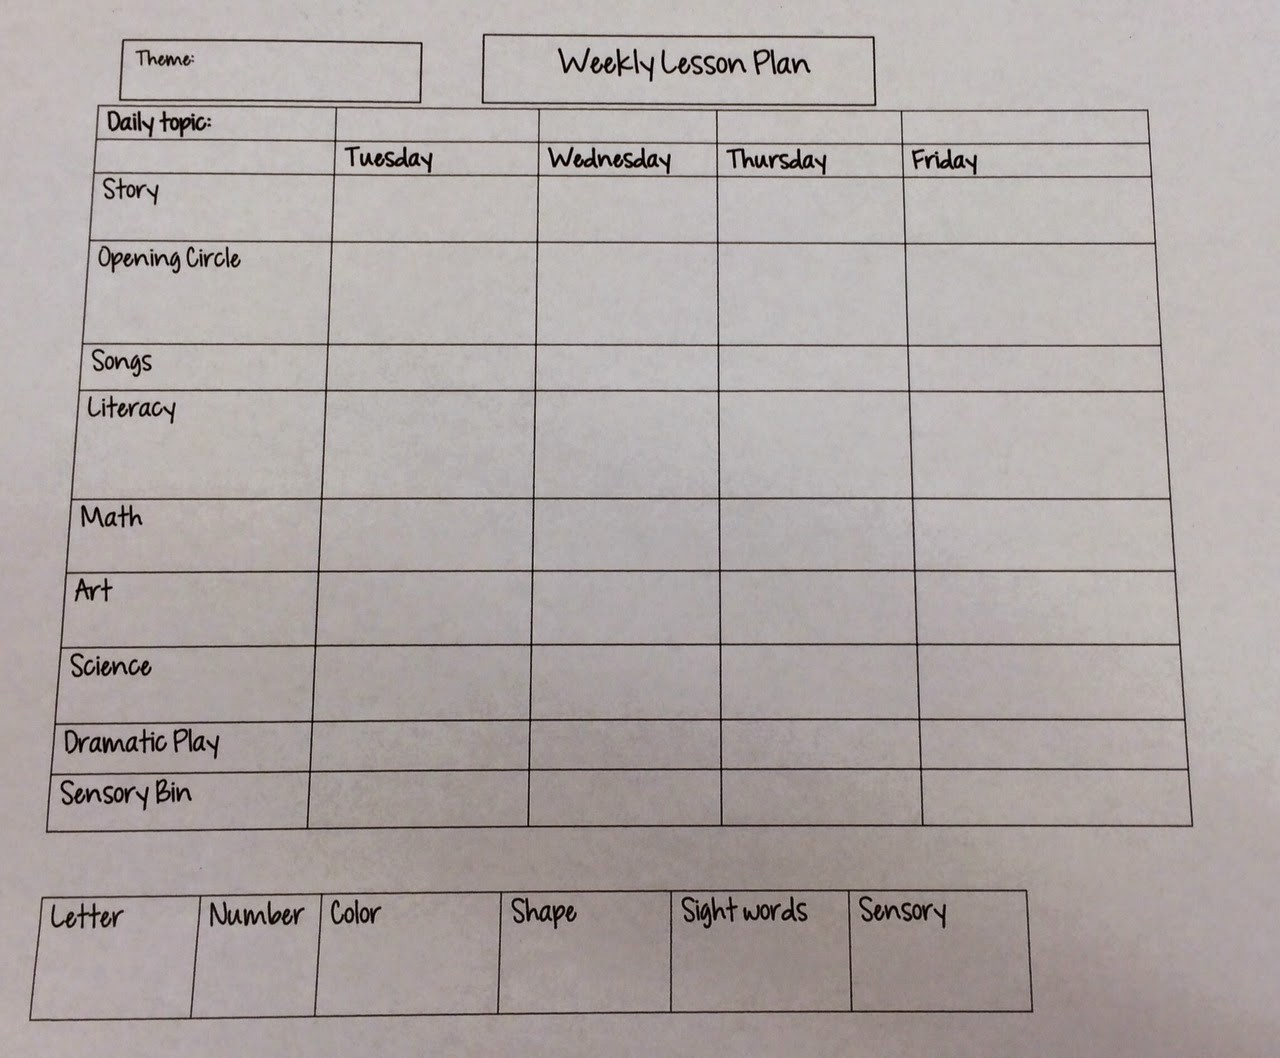 Weekly Lesson Plan Templates Free New Miss Nicole S Preschool Weekly Lesson Plan Template